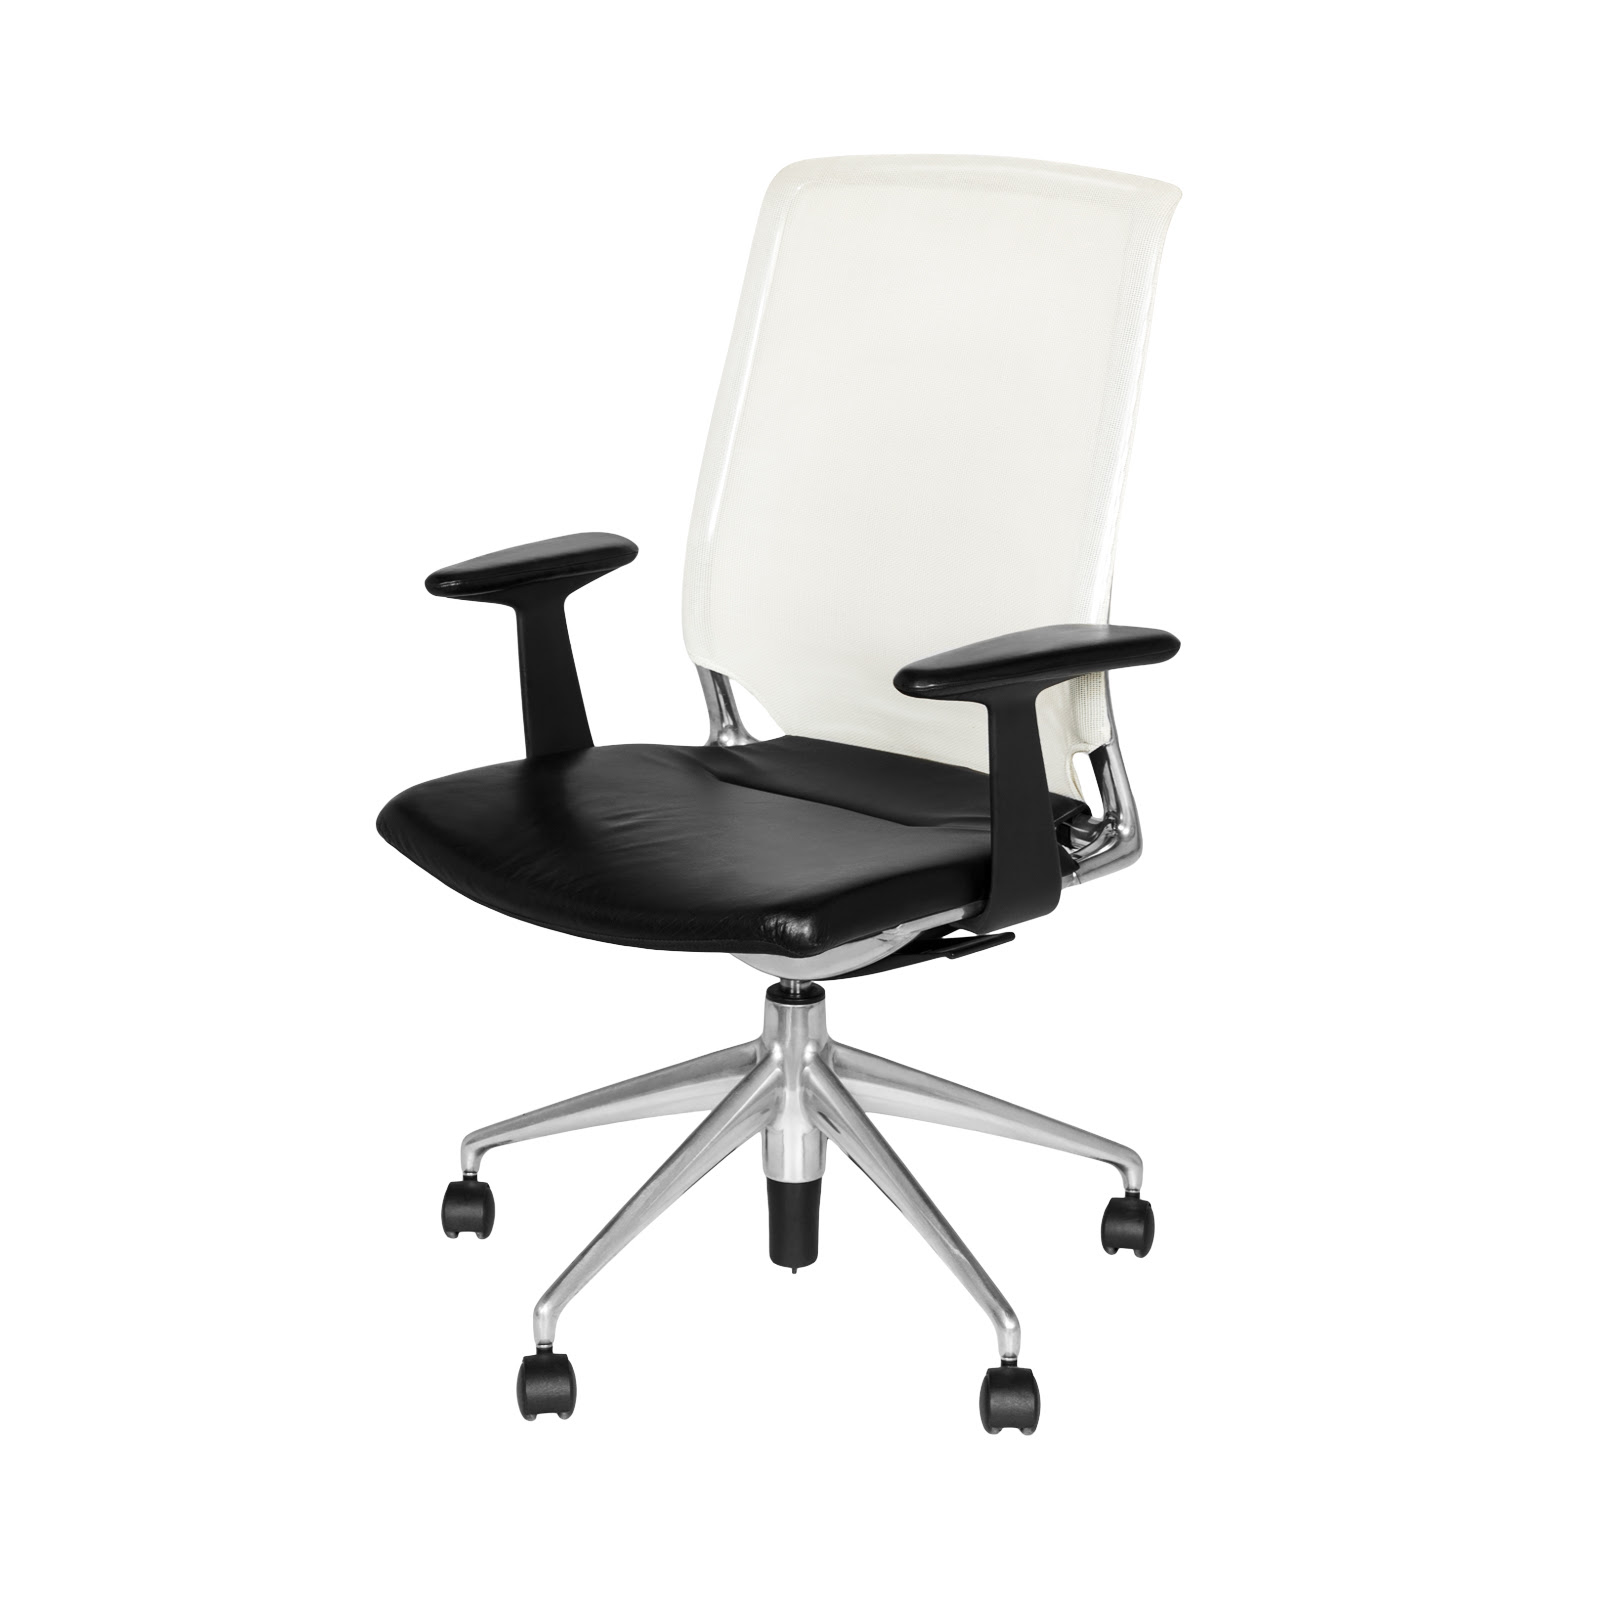 Vitra Meda Office Chair Rental   Trade Show Furniture ...